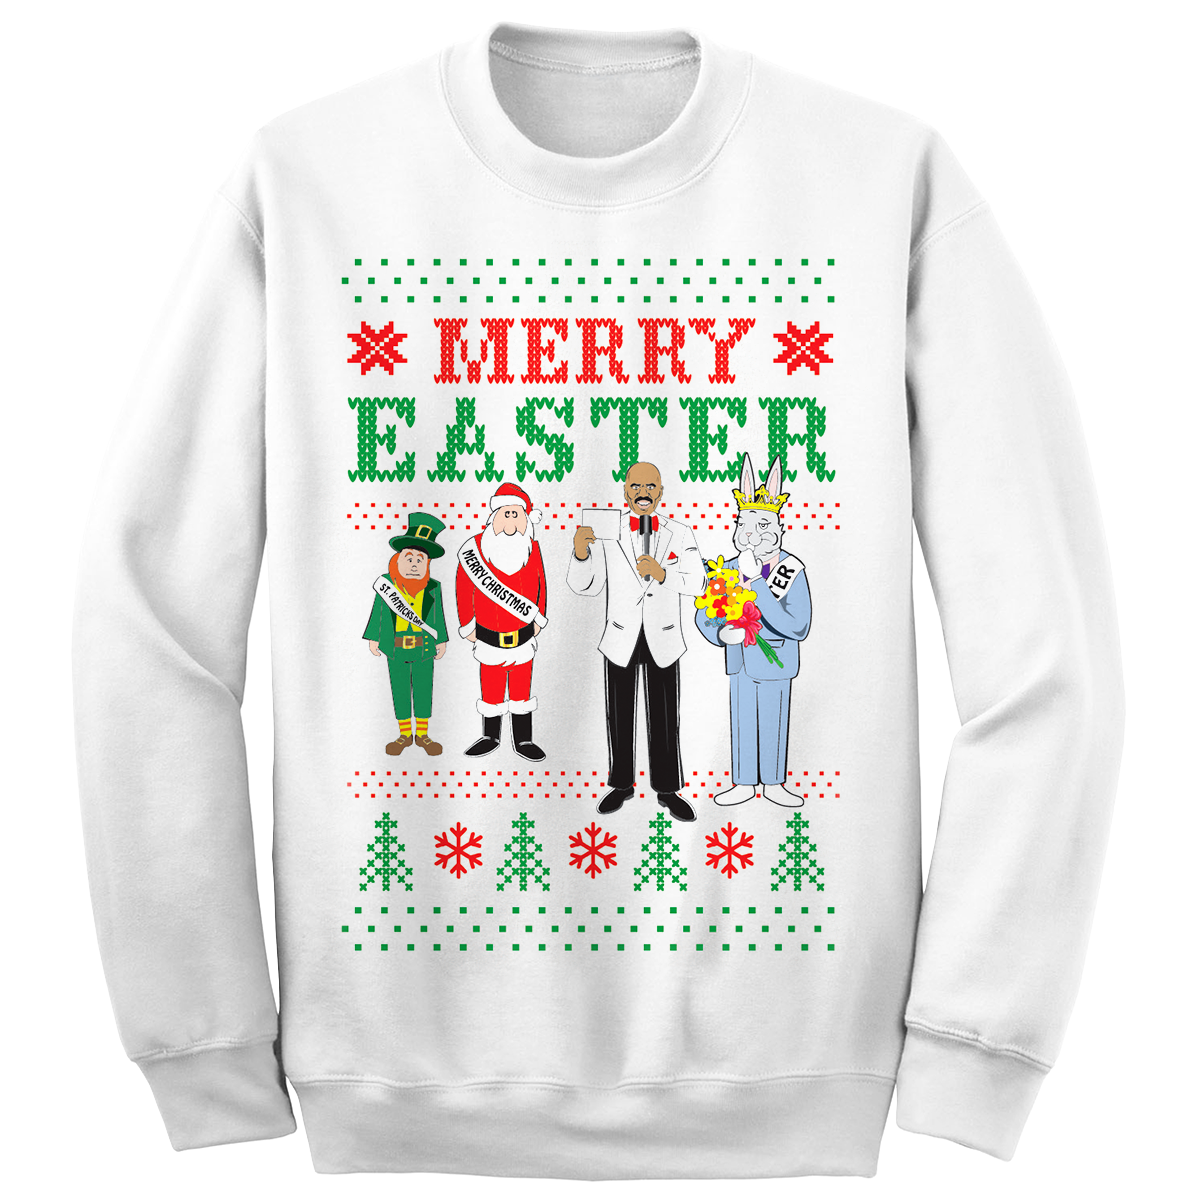 Steve Harvey Merry Easter Sweatshirt (White)